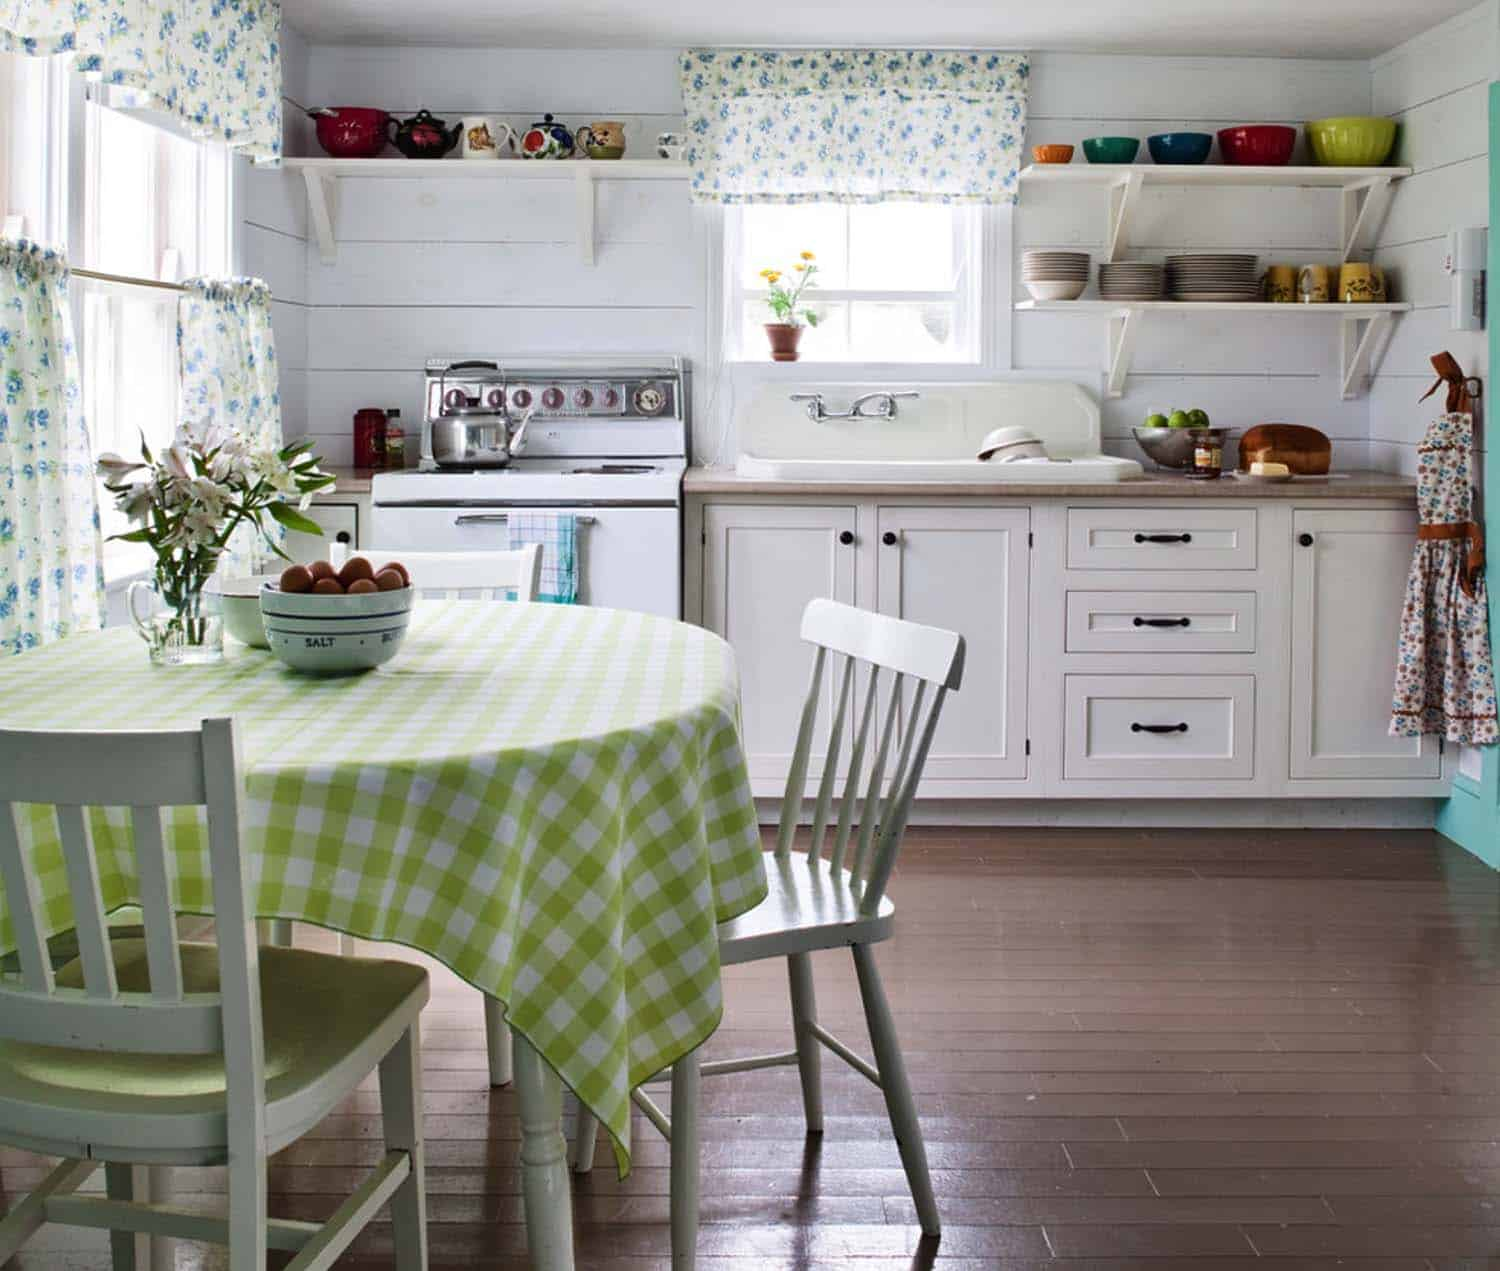 3 resume styles for srilankan govt jobs. 33 Amazing Country Chic Kitchens Brimming With Character